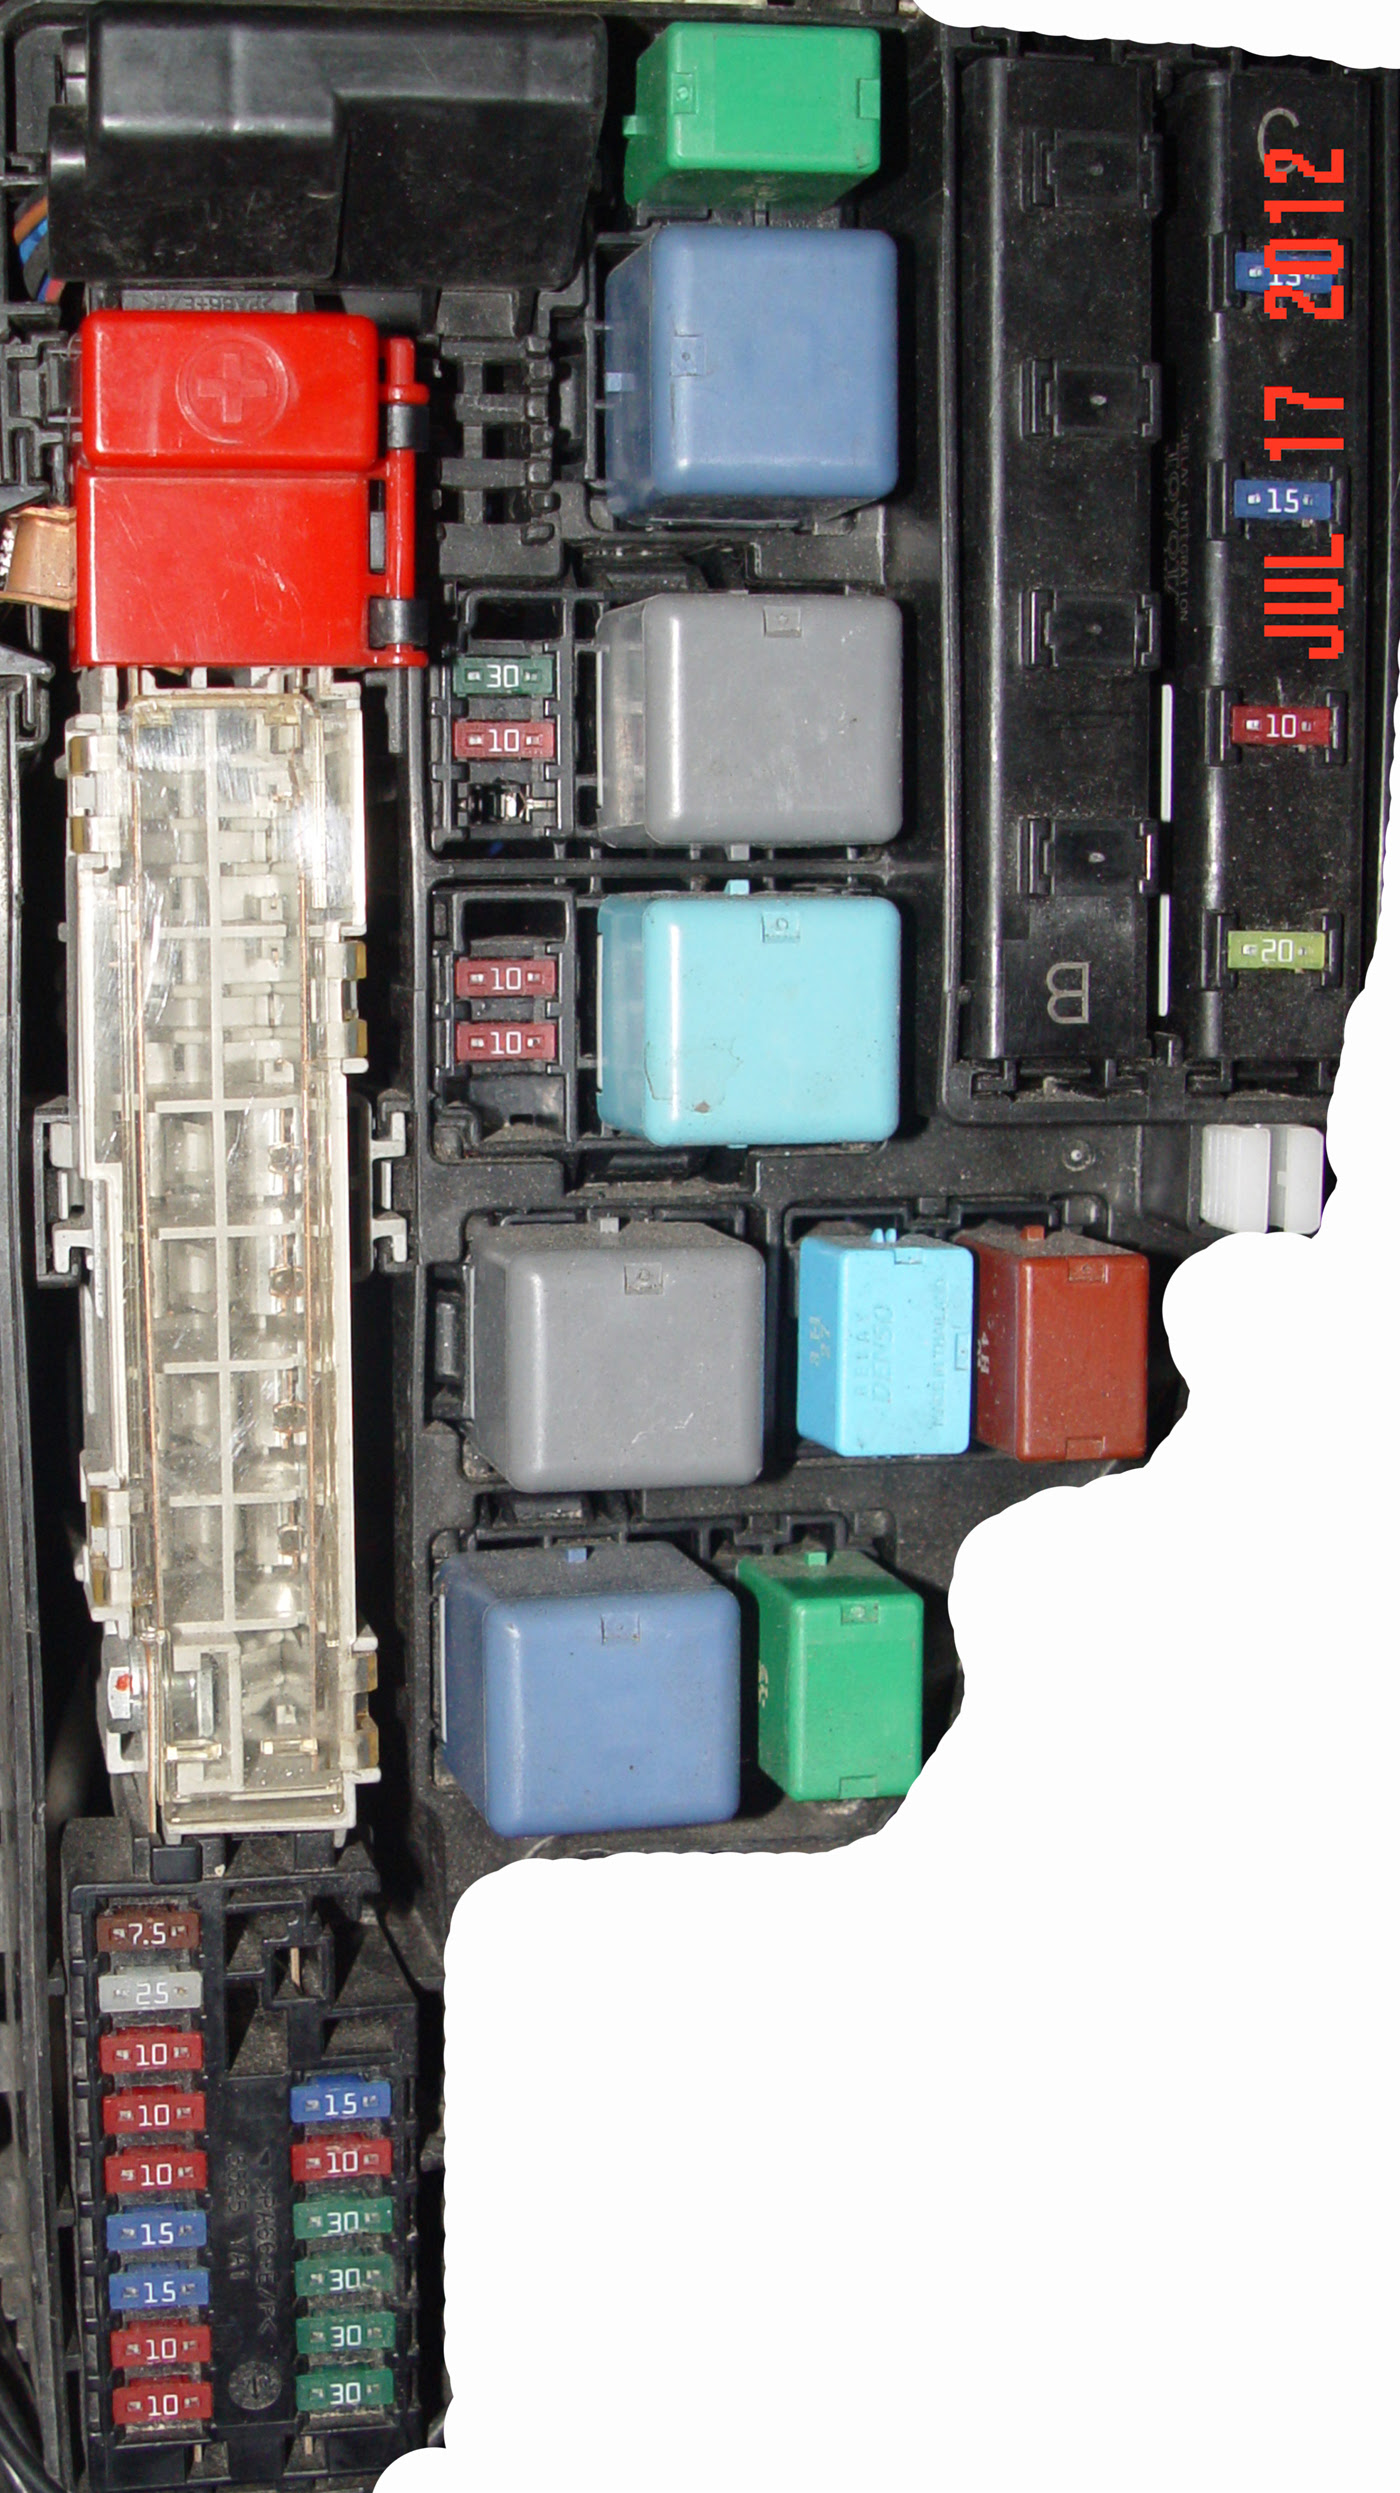 07 Prius Fuse Box Wiring Diagram Snail Cable A Snail Cable A Piuconzero It